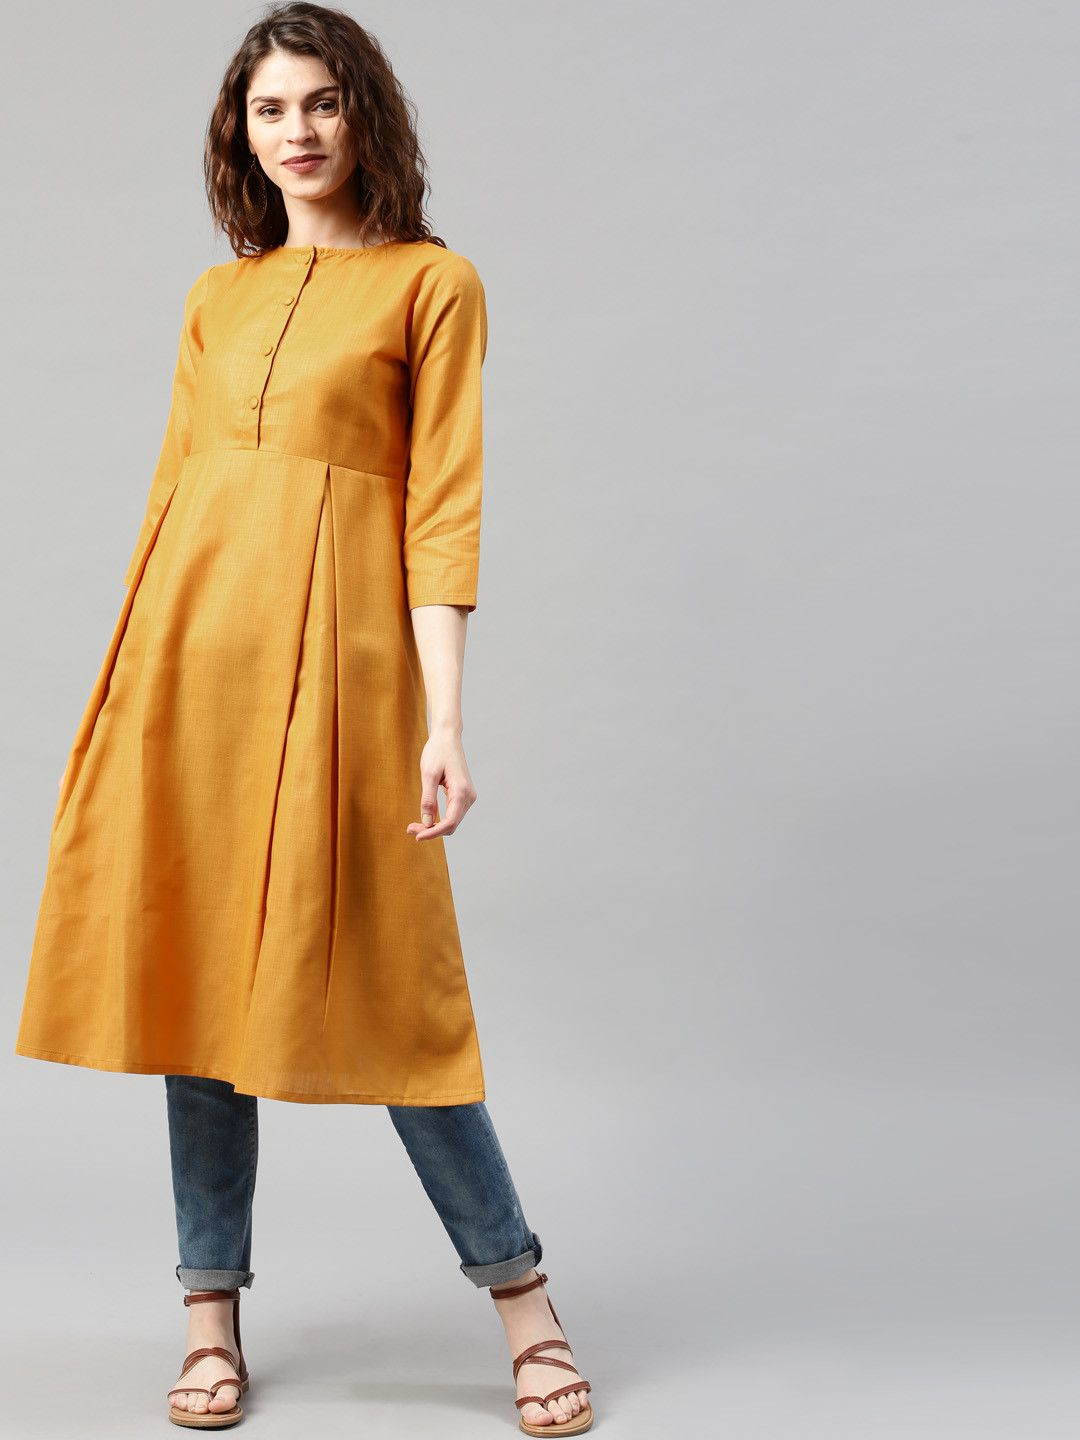 18e18c1d7a Buy Libas Mustard Solid Cotton A-Line Pleated Kurta online in India at best  price.Mustard yellow A-line kurta, has a notched round neck, a short button  ...